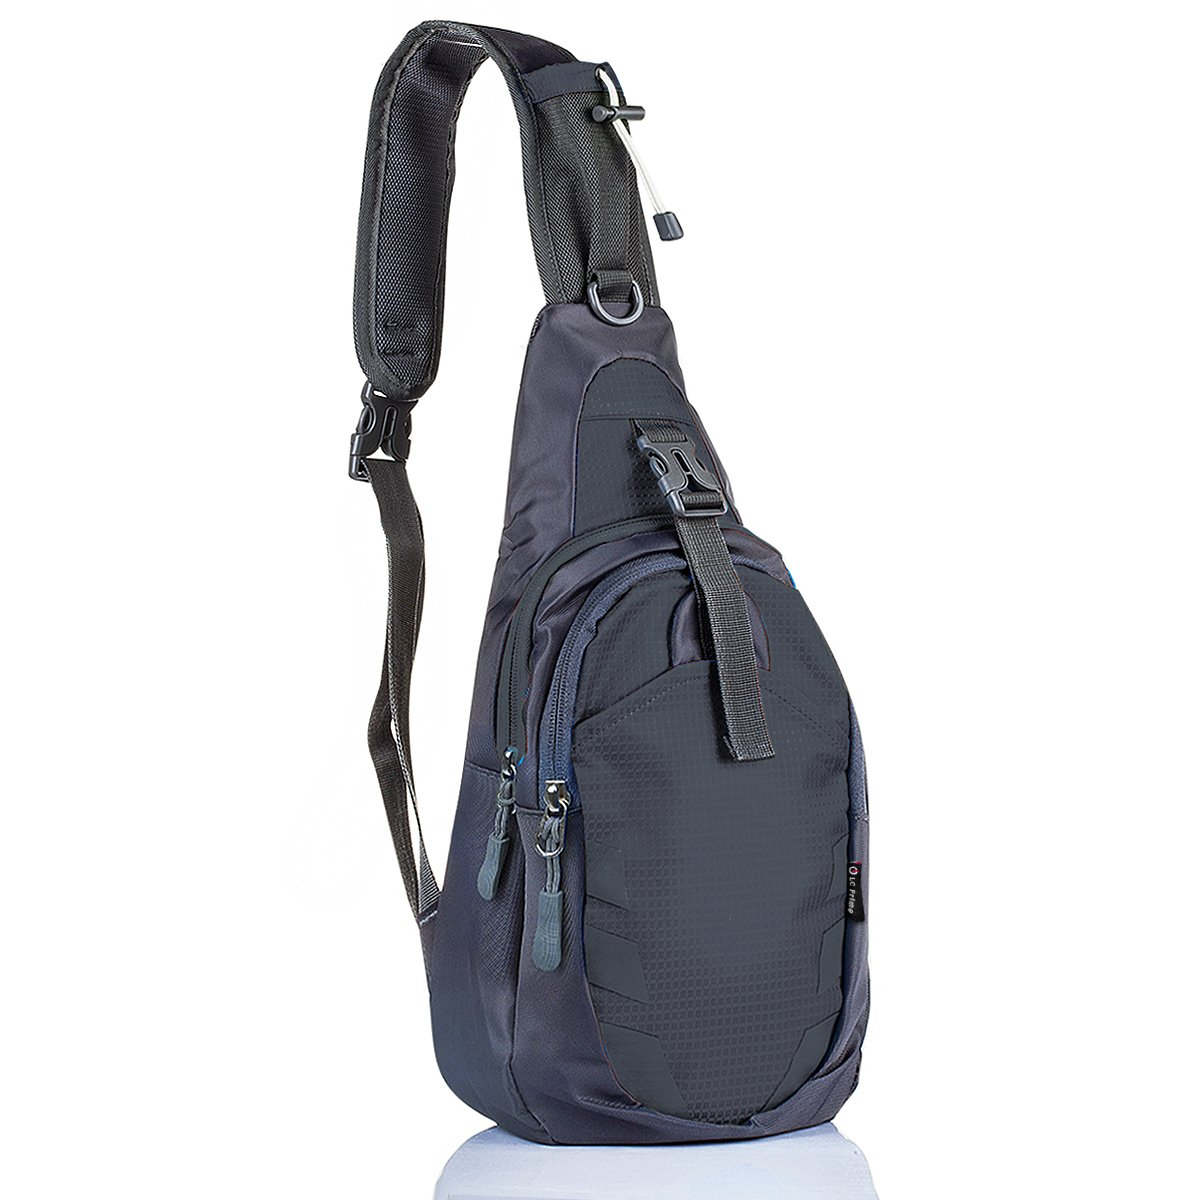 Sling Bag Chest Shoulder Unbalance Gym Fanny Backpack Sack Satchel Outdoor Bike LC Prime CH058BK-L